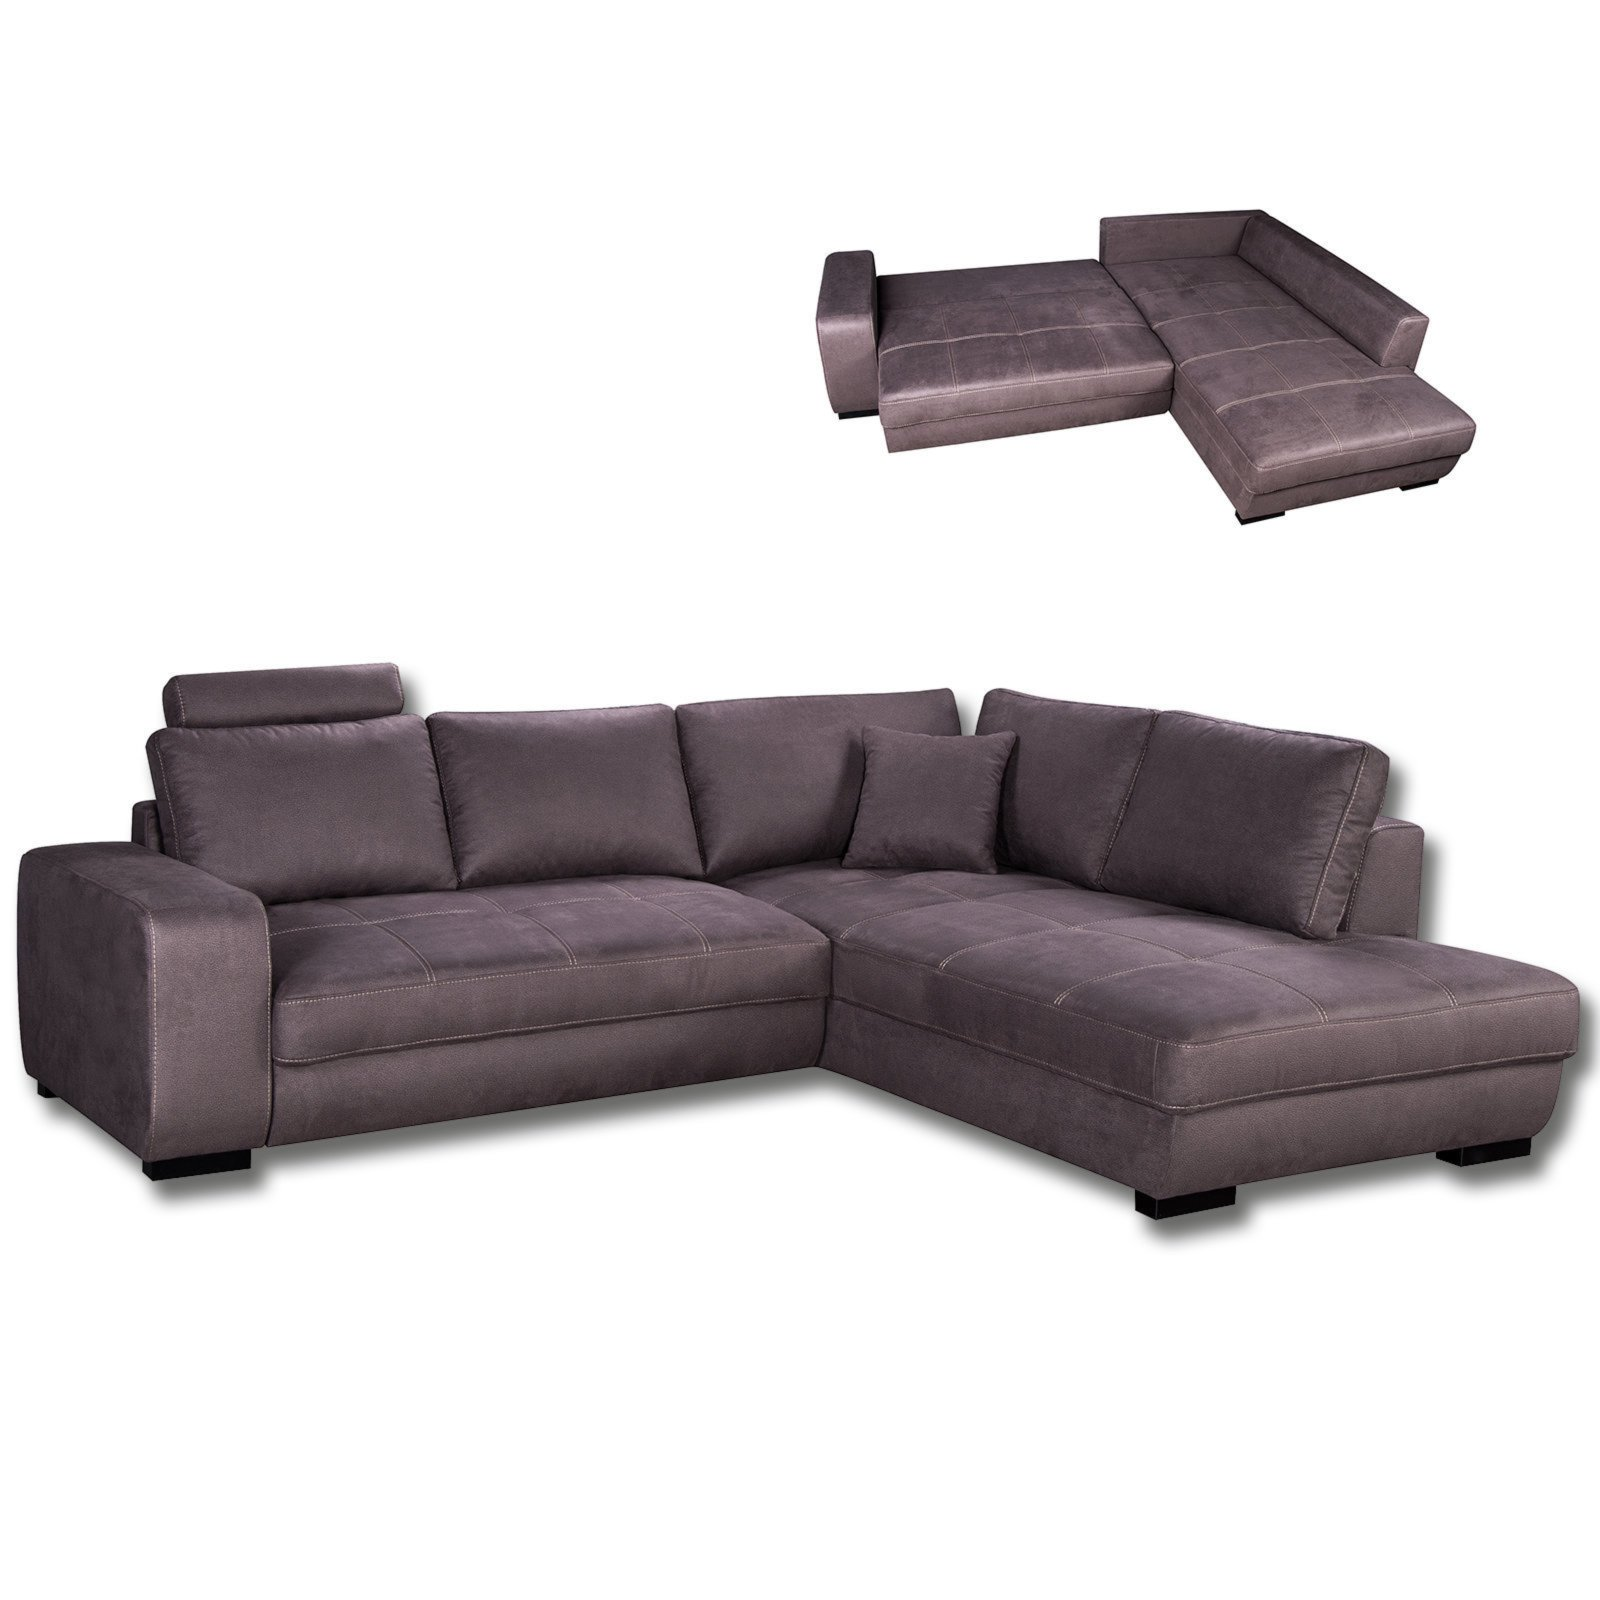 ecksofa braun mit liegefunktion ecksofas l form sofas couches m bel roller m belhaus. Black Bedroom Furniture Sets. Home Design Ideas